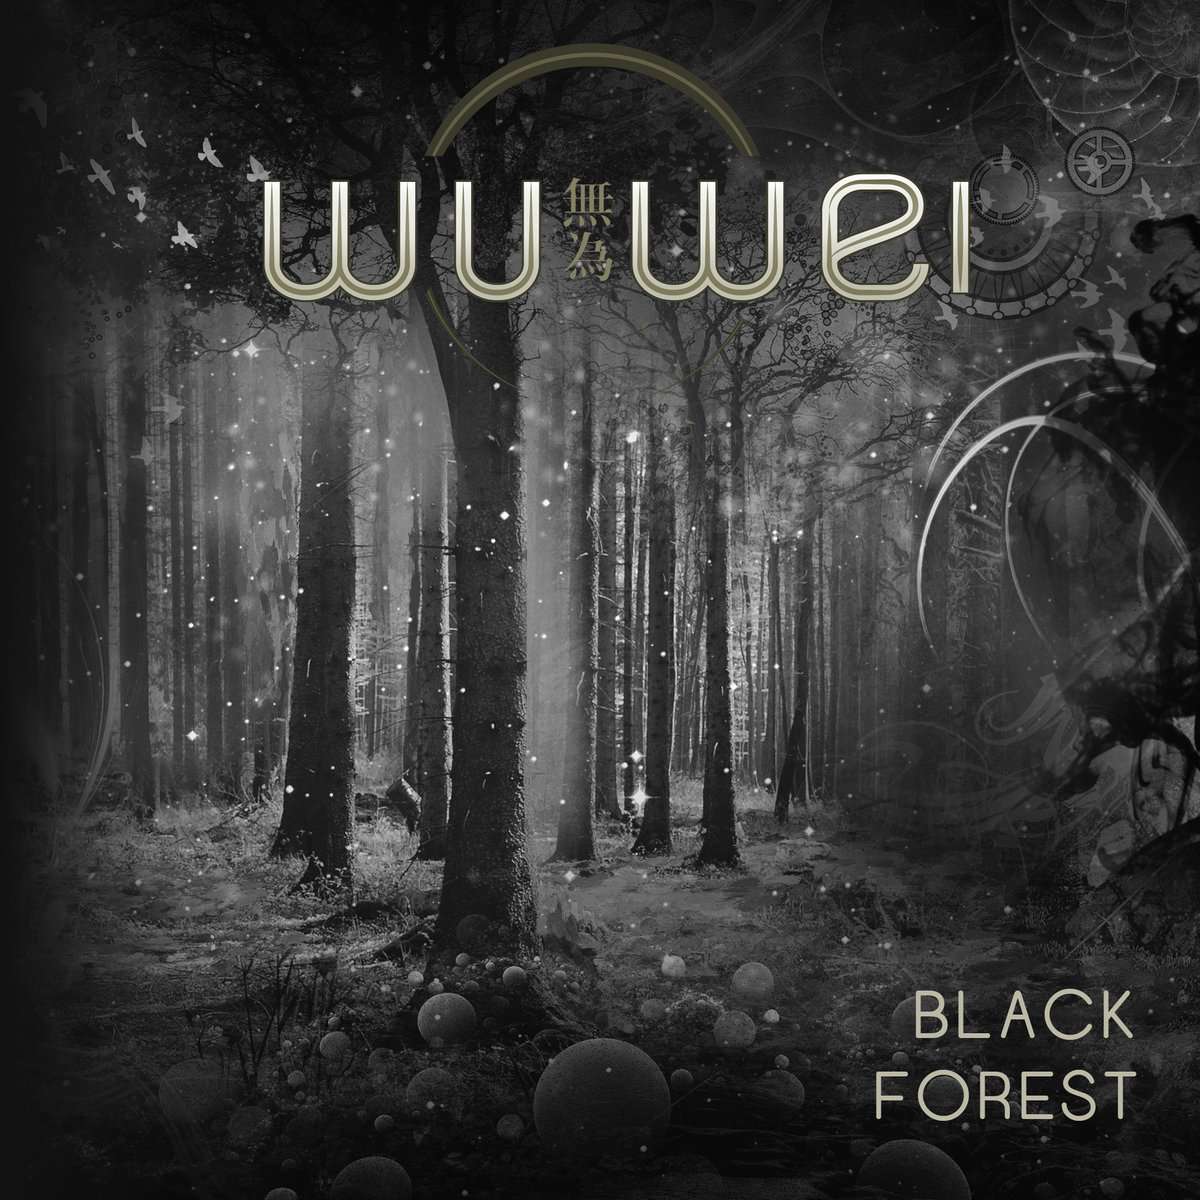 Wu Wei - Black Forest (Devin Kroes Remix) @ 'Black Forest' album (electronic, future bass)